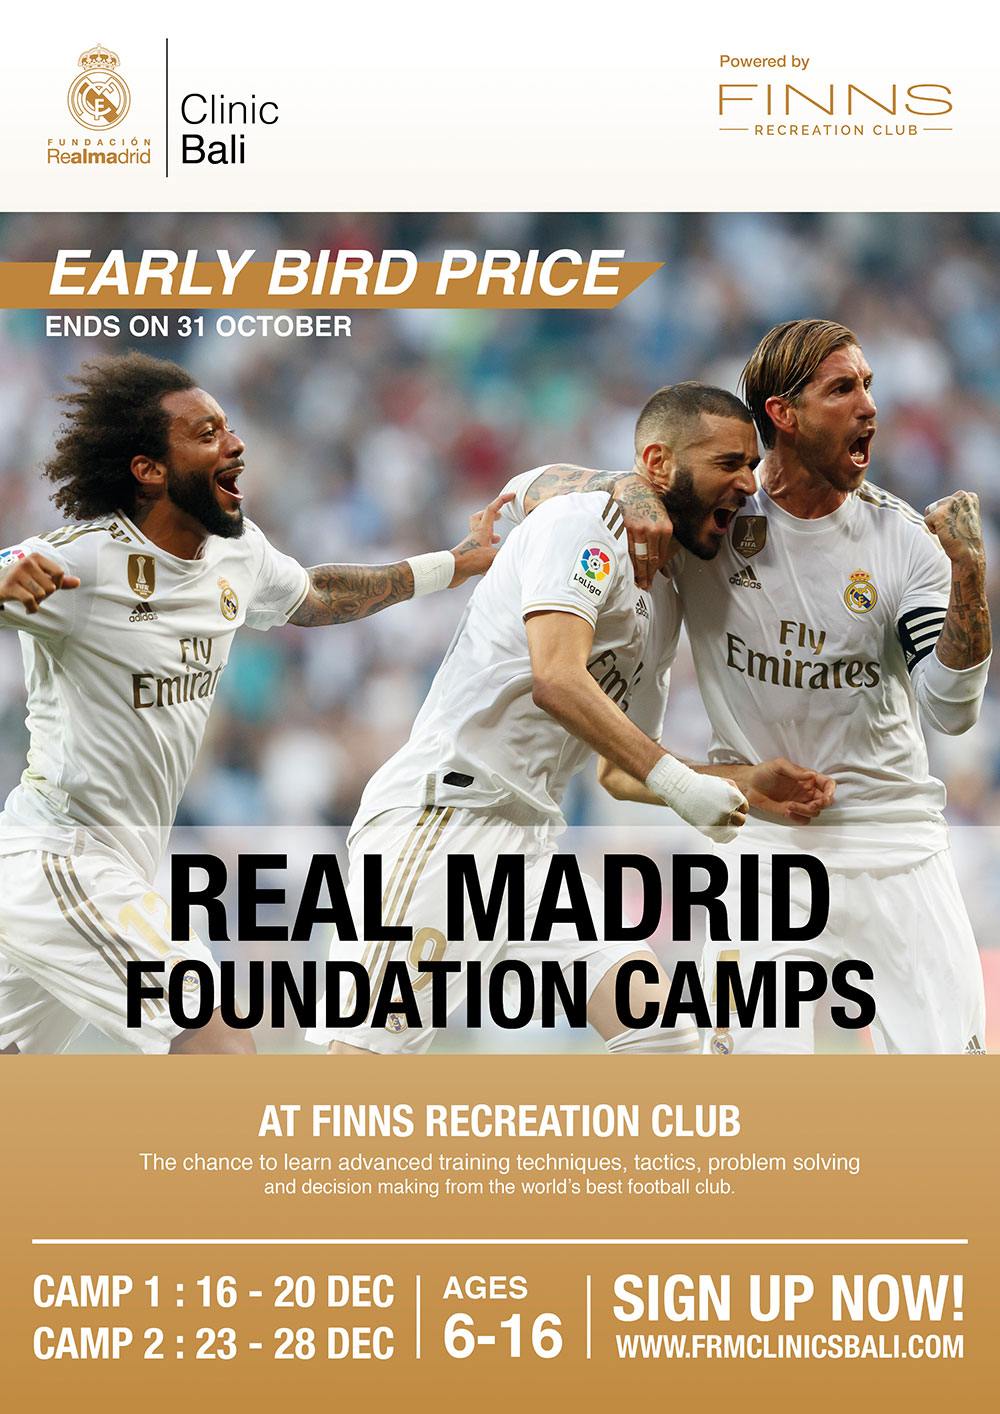 Real Madrid Foundation Camps